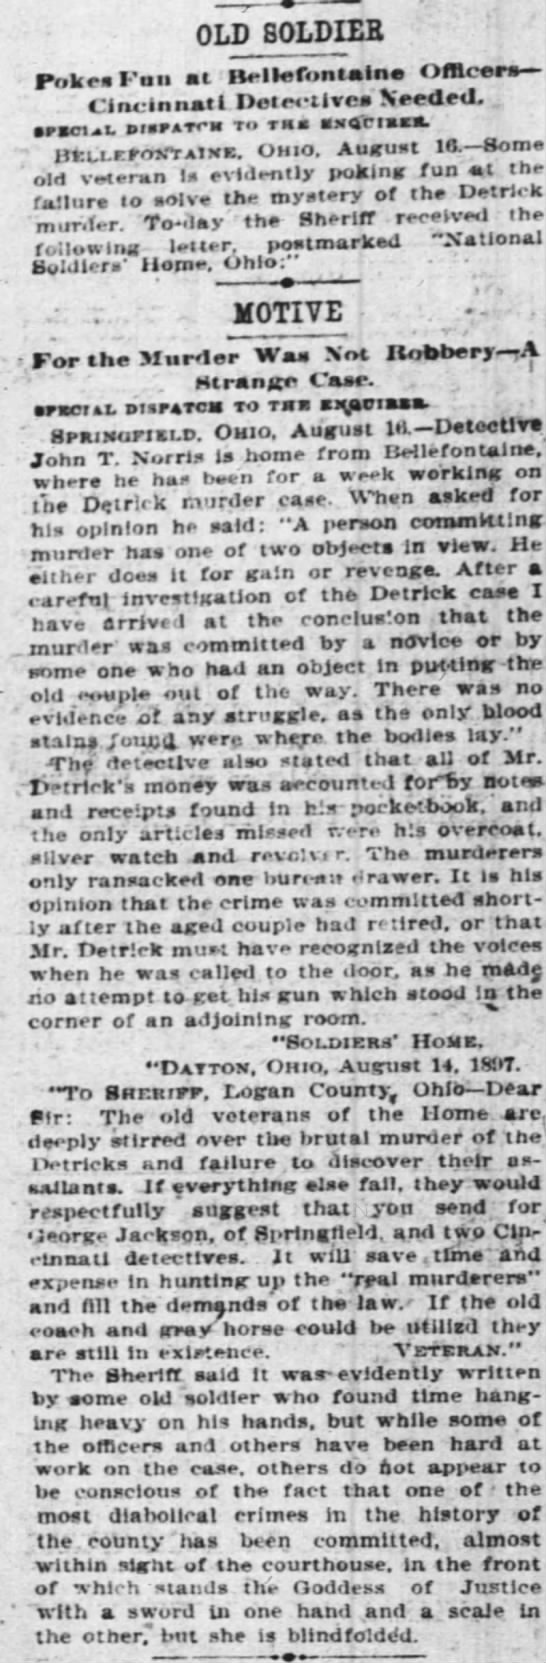 """ROBBERY"""" Old Soldier Motive The Cincinnati Enquirer 17 Aug 1897 8 -"""